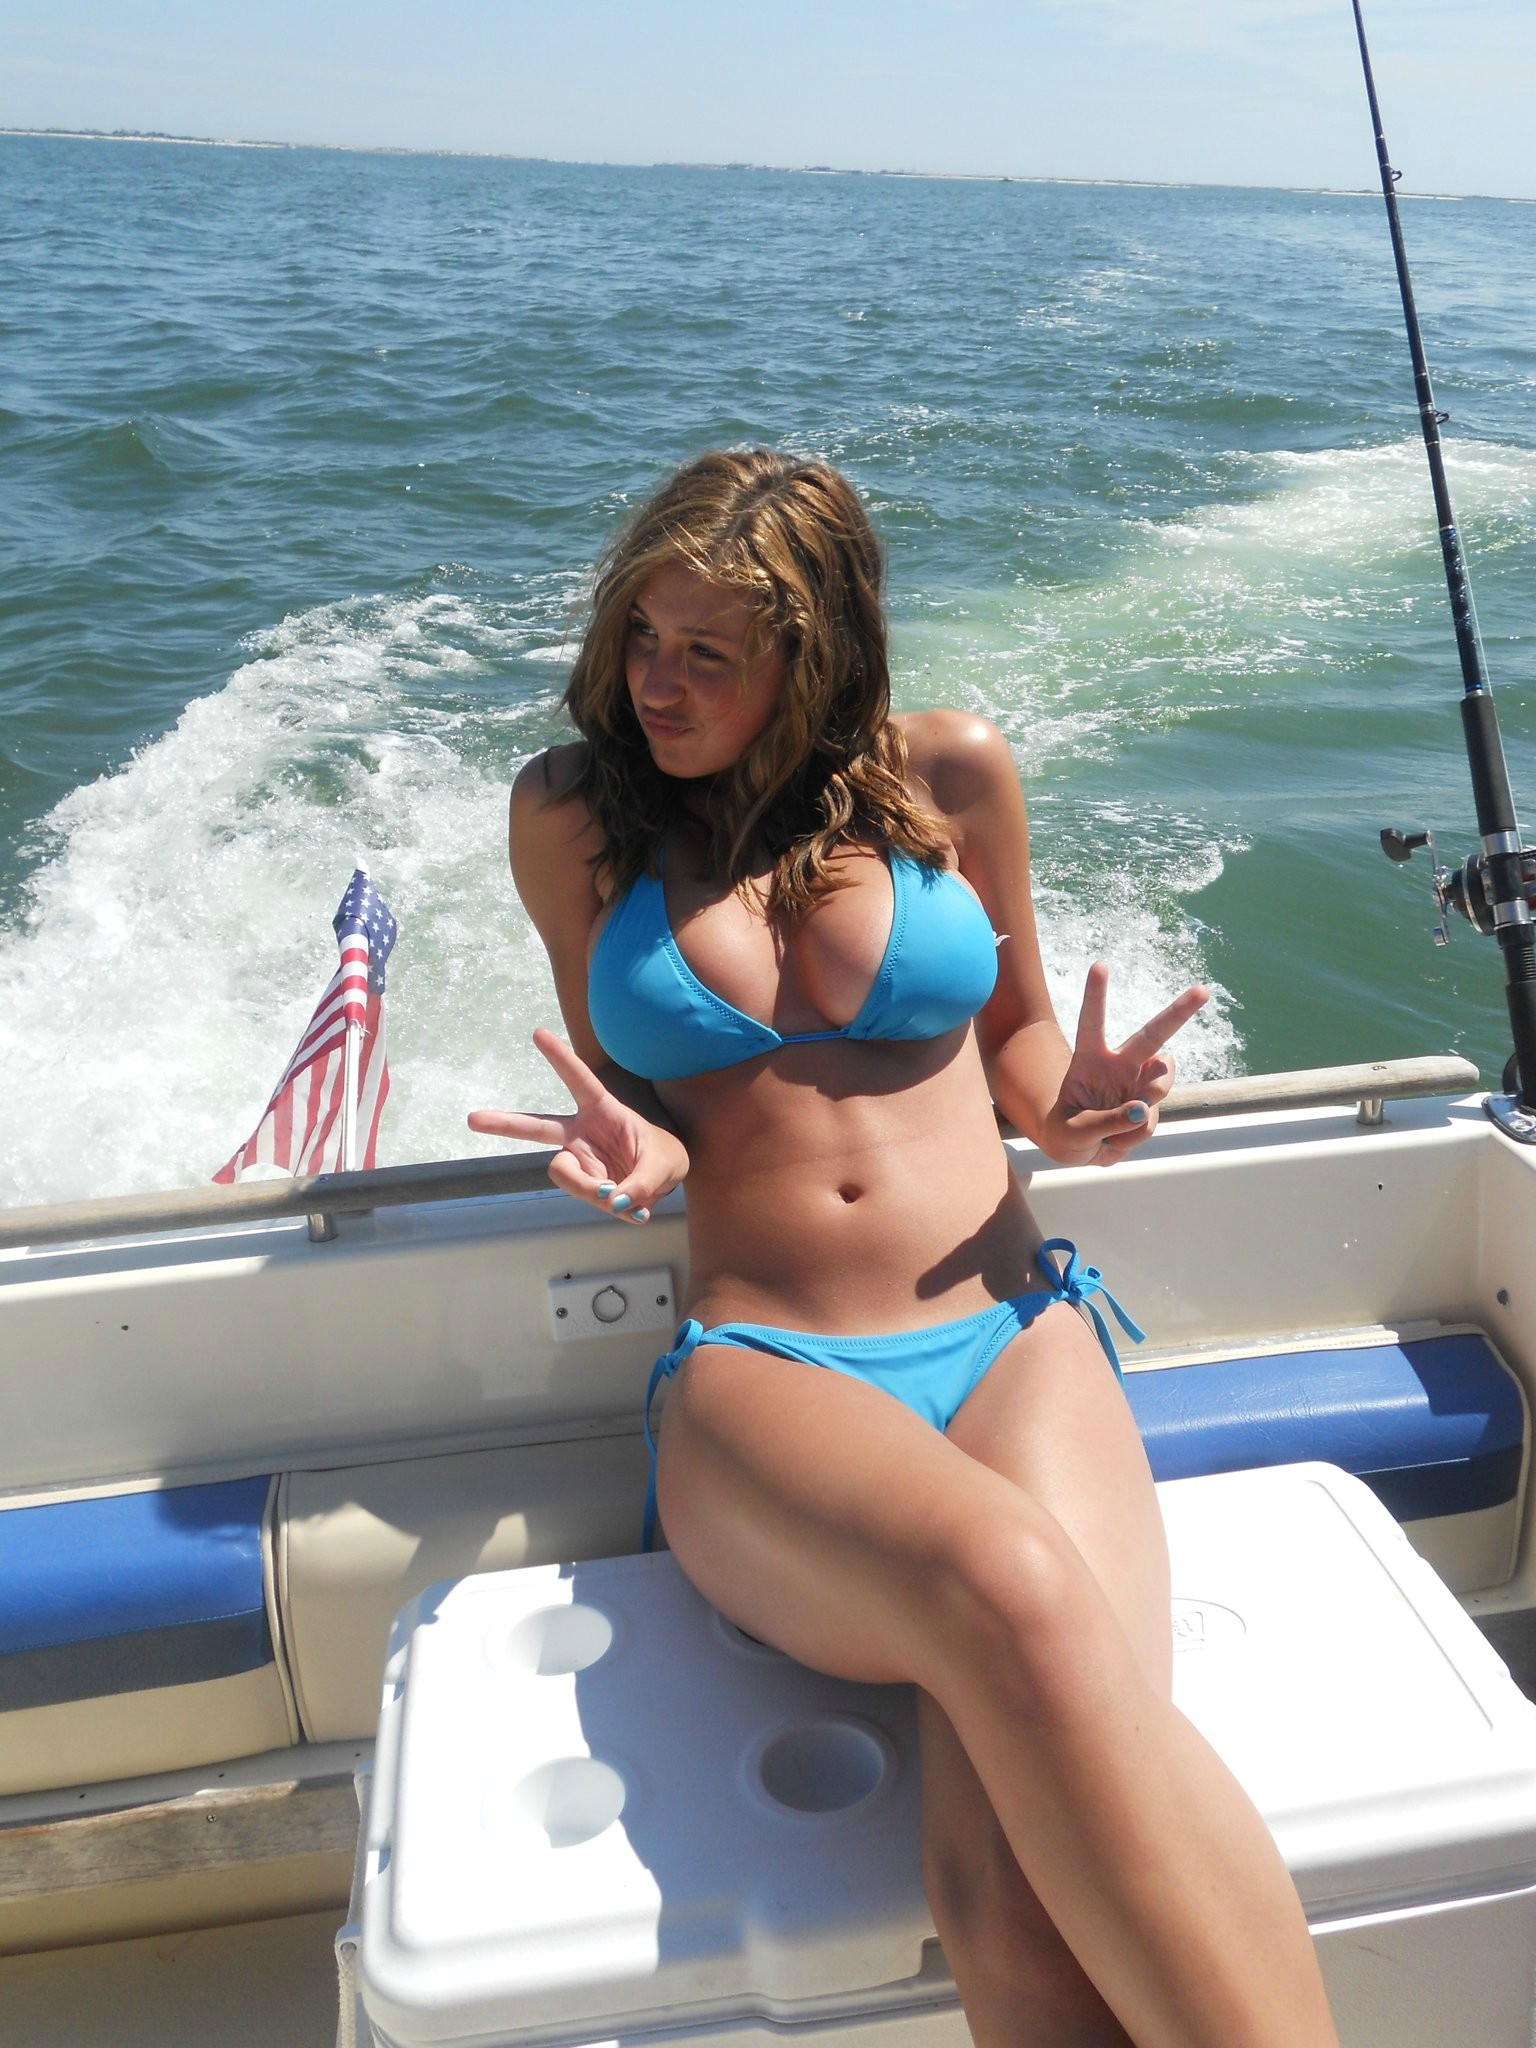 Hottie with a body laid back on the boat